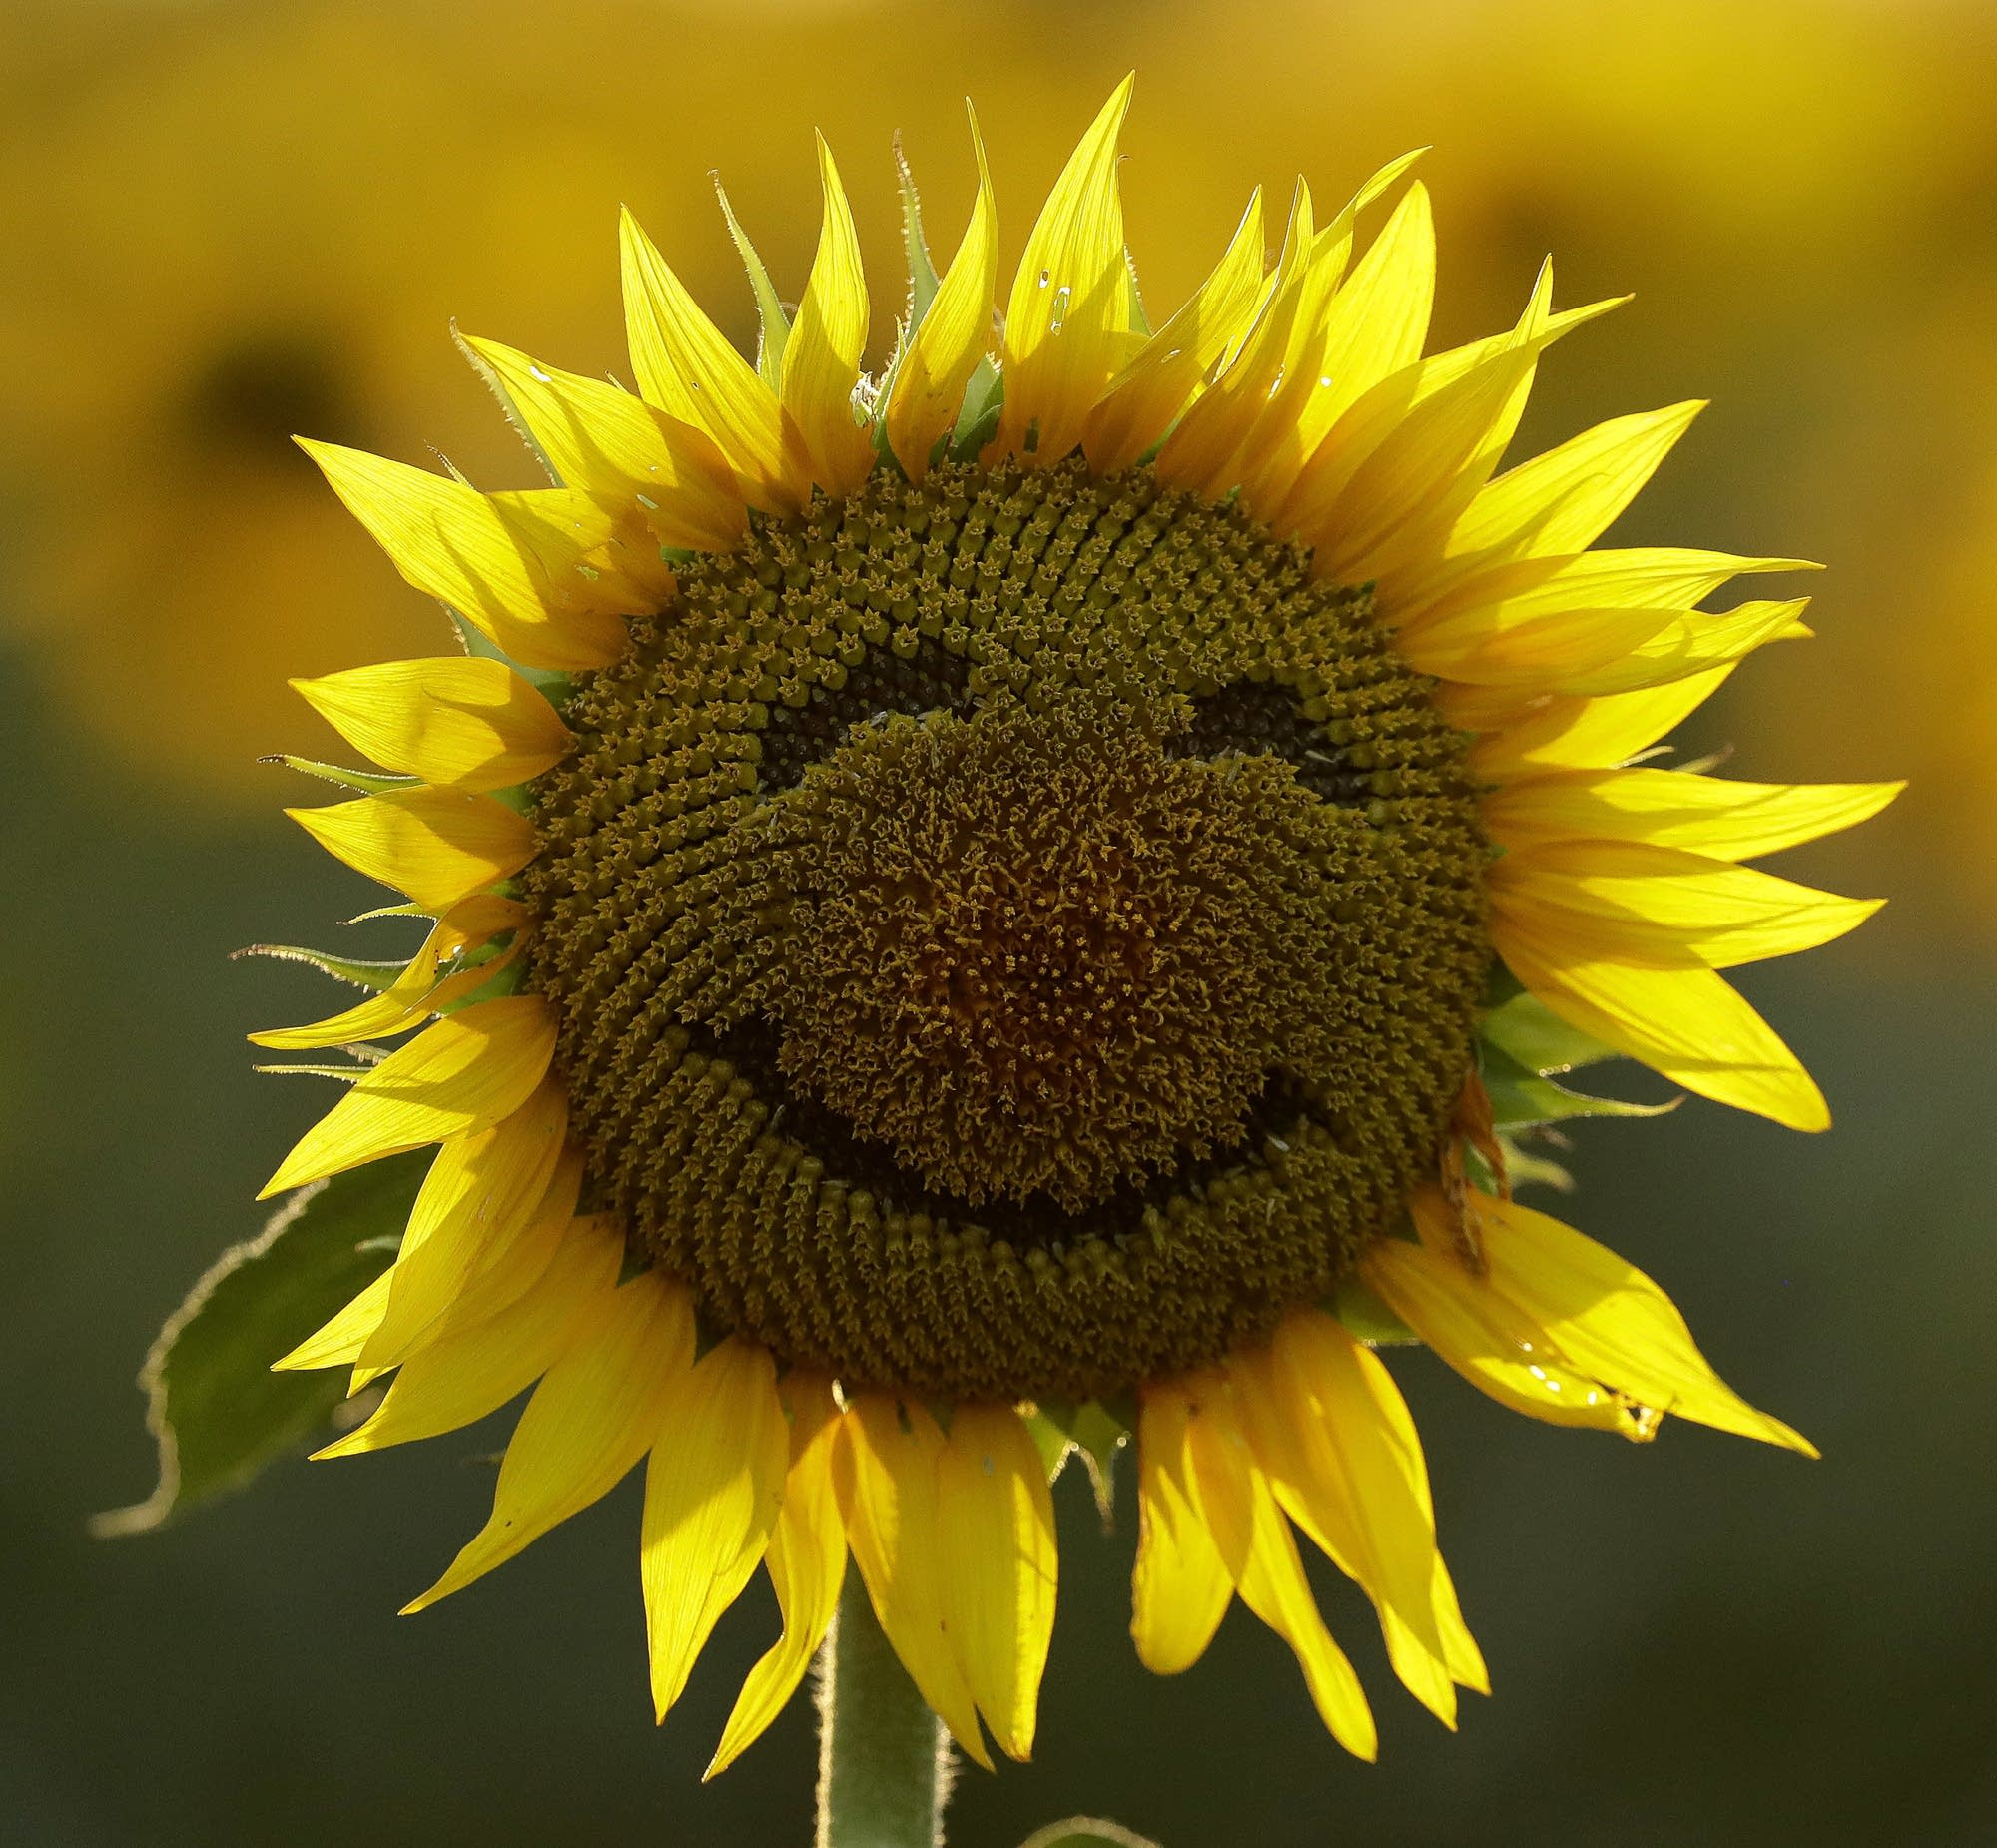 A smiley face is seen on a sunflower